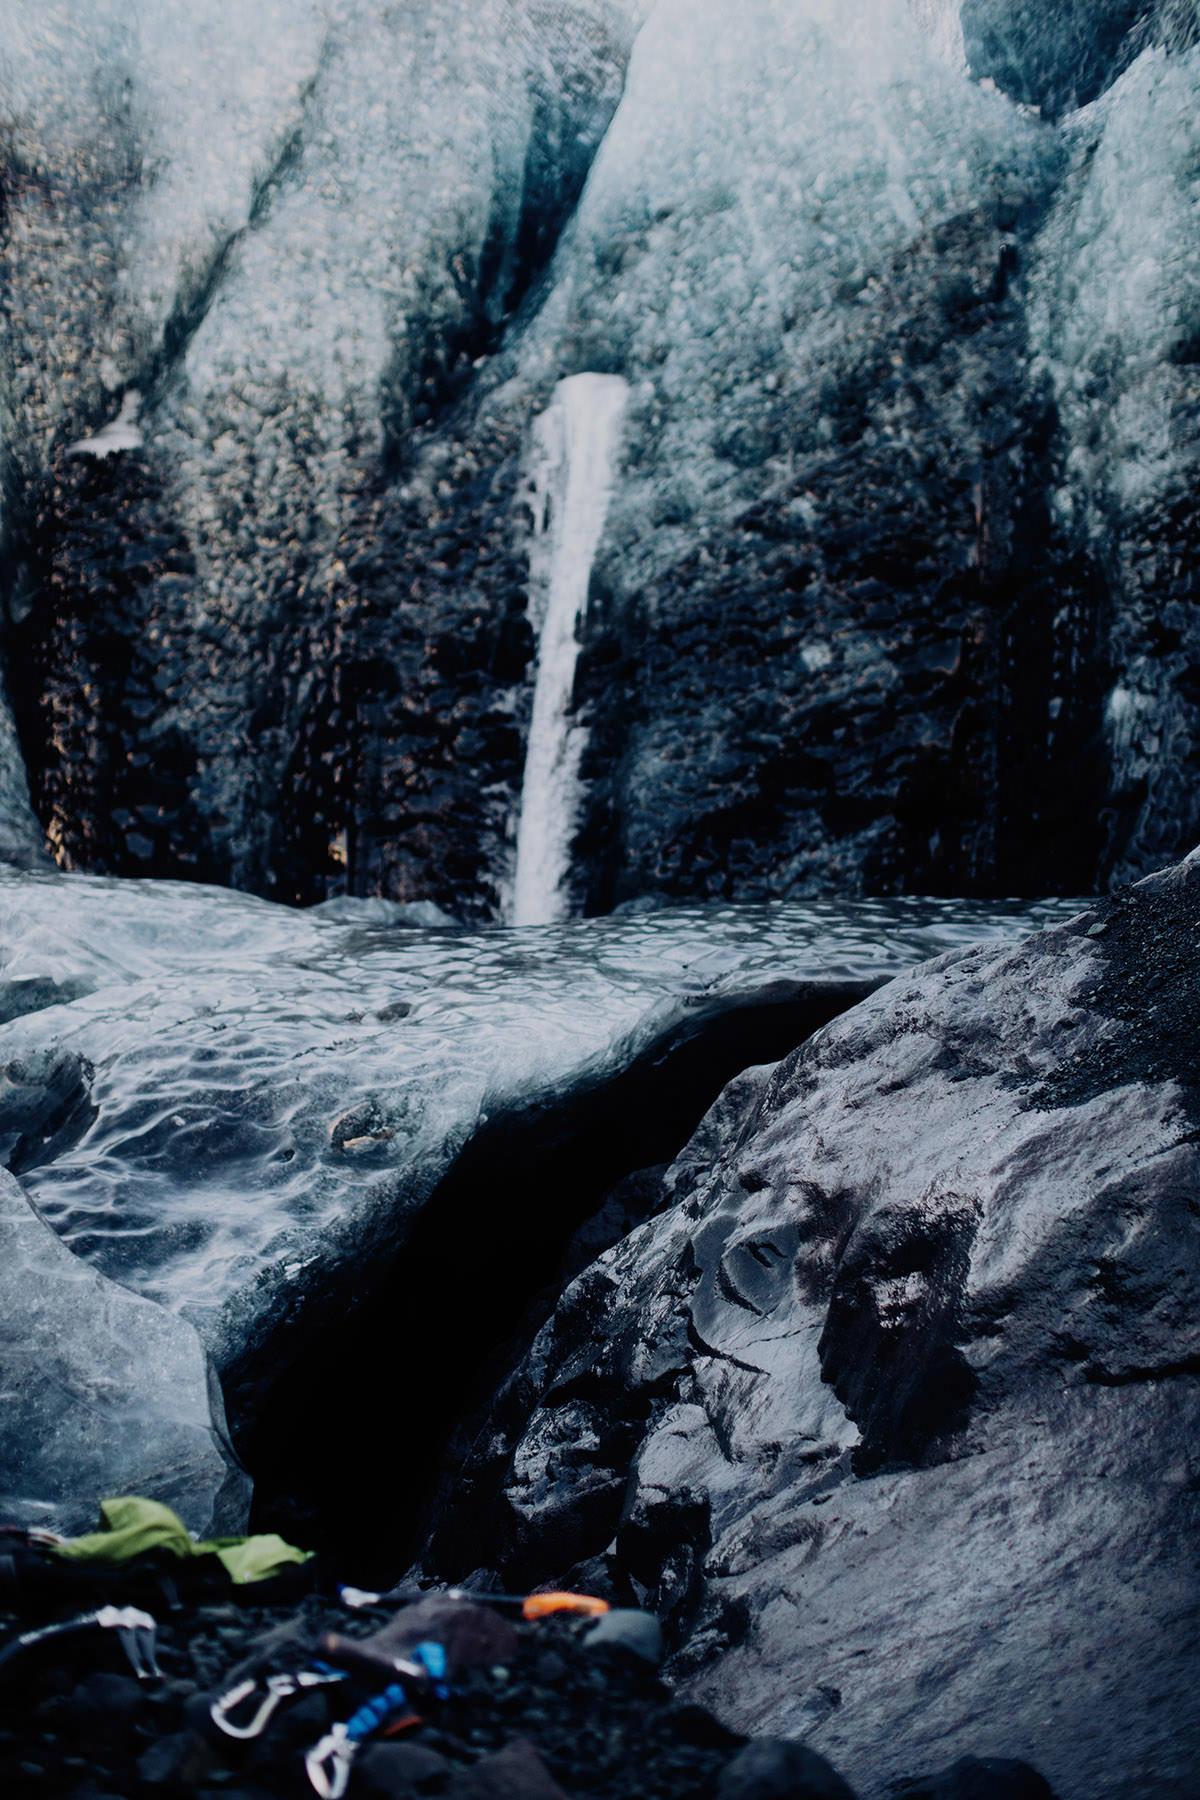 ice-cave-elopement-iceland-water-fall-glacier